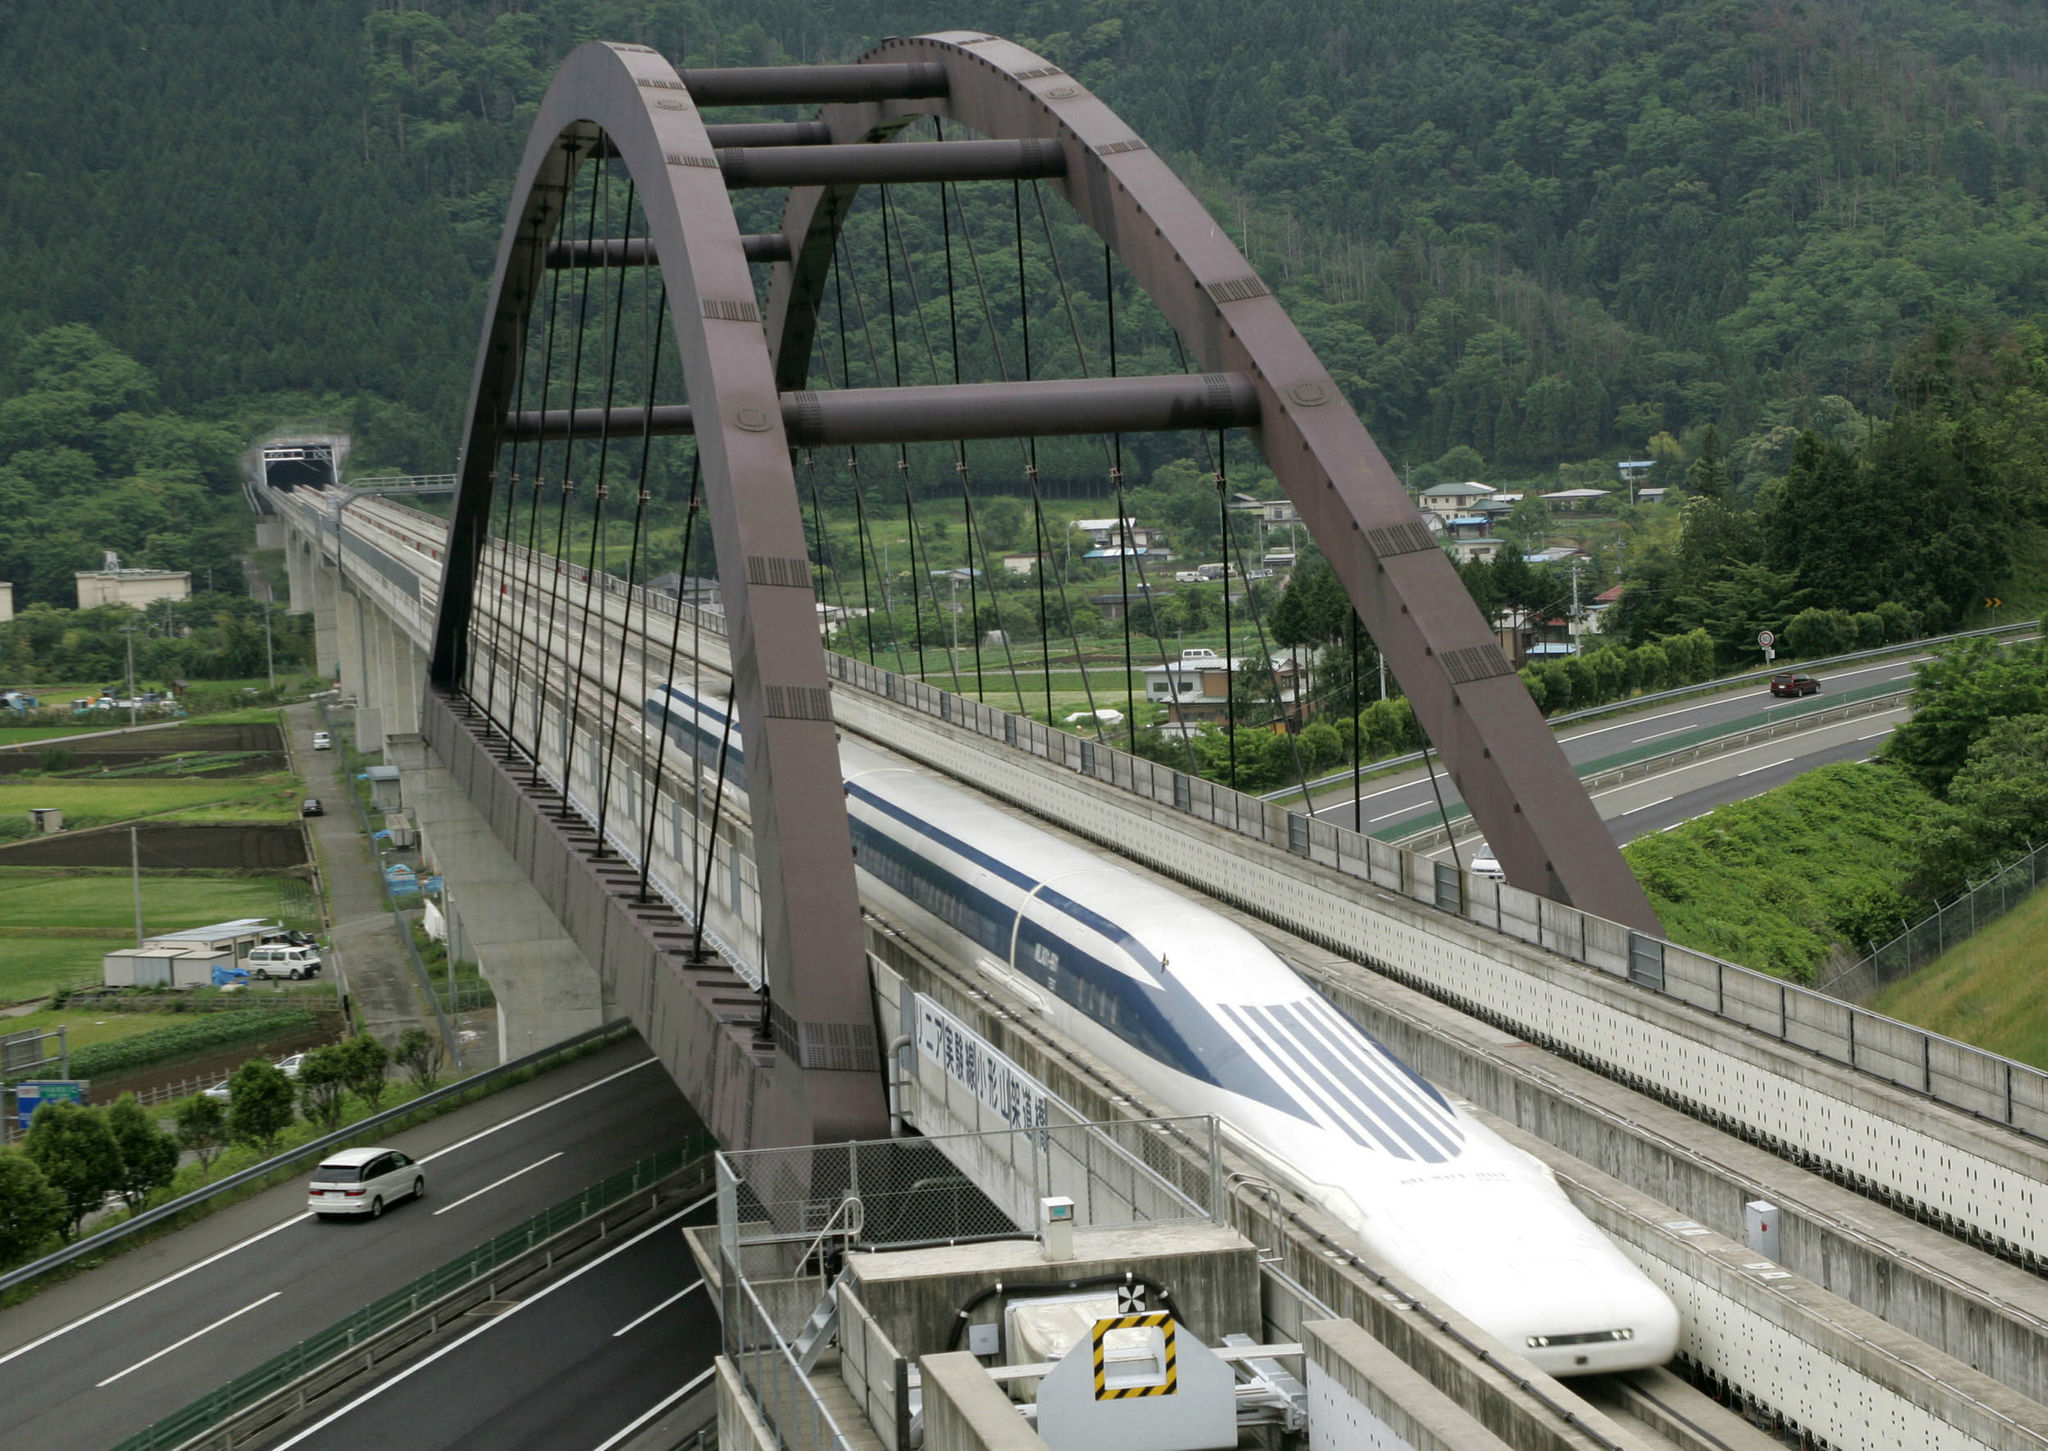 Central Japan Railway Co.'s Maglev train, which is levitated and propelled forward by magnetic force, speeds at an 18.4 kilometre test track in Tsuru, west of Tokyo June 10, 2004.